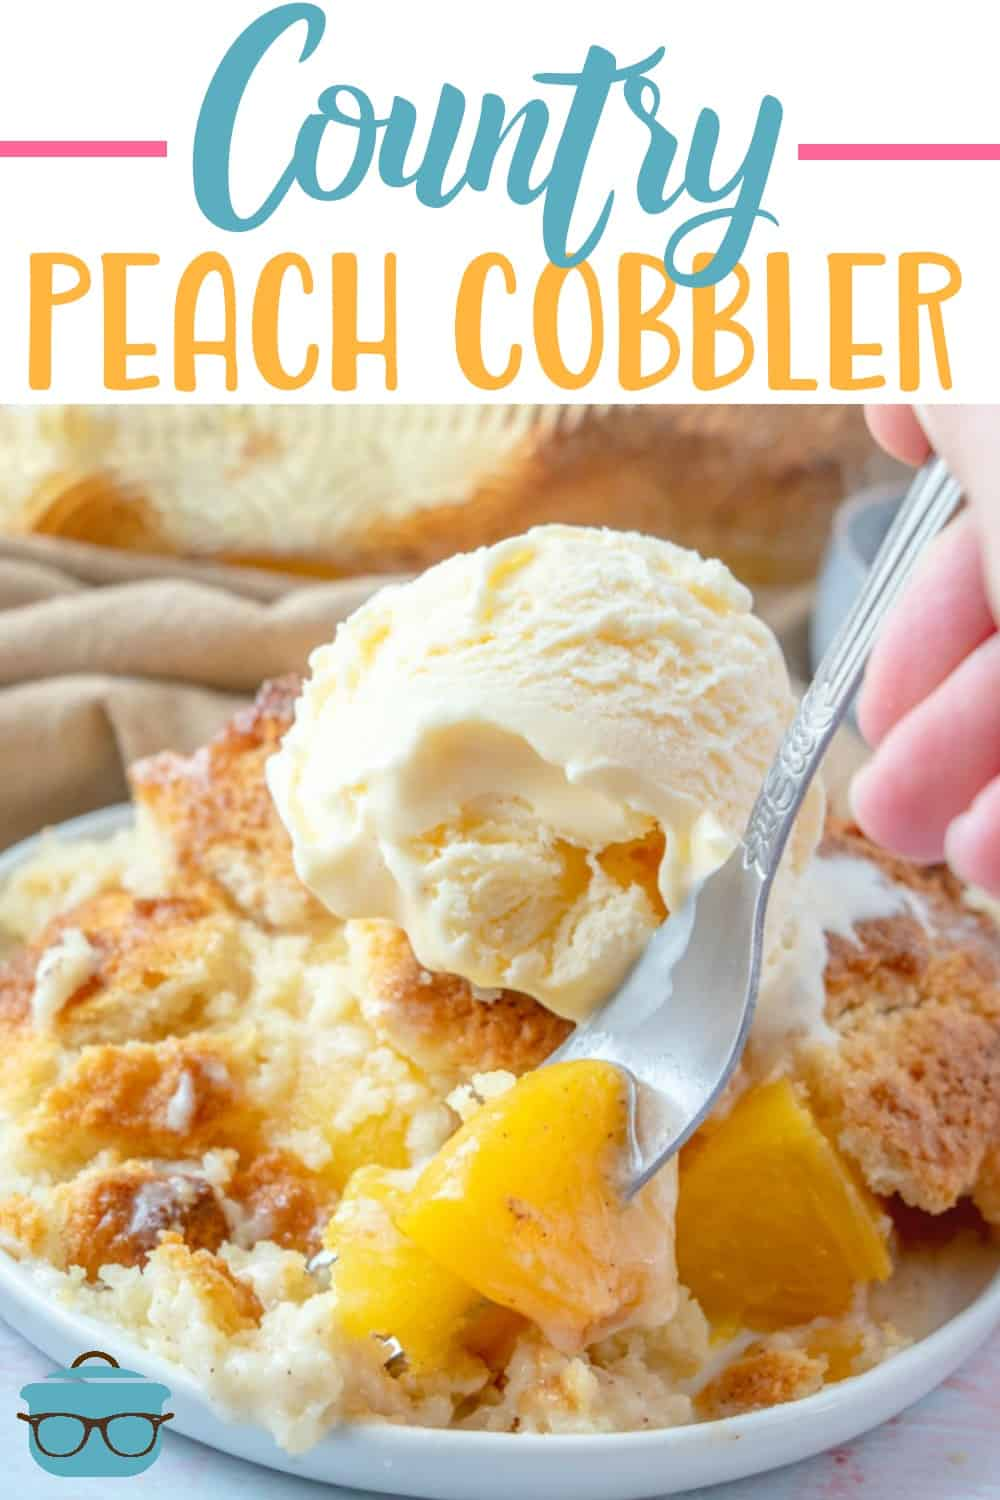 Easy Southern Country Peach Cobbler recipe from The Country Cook